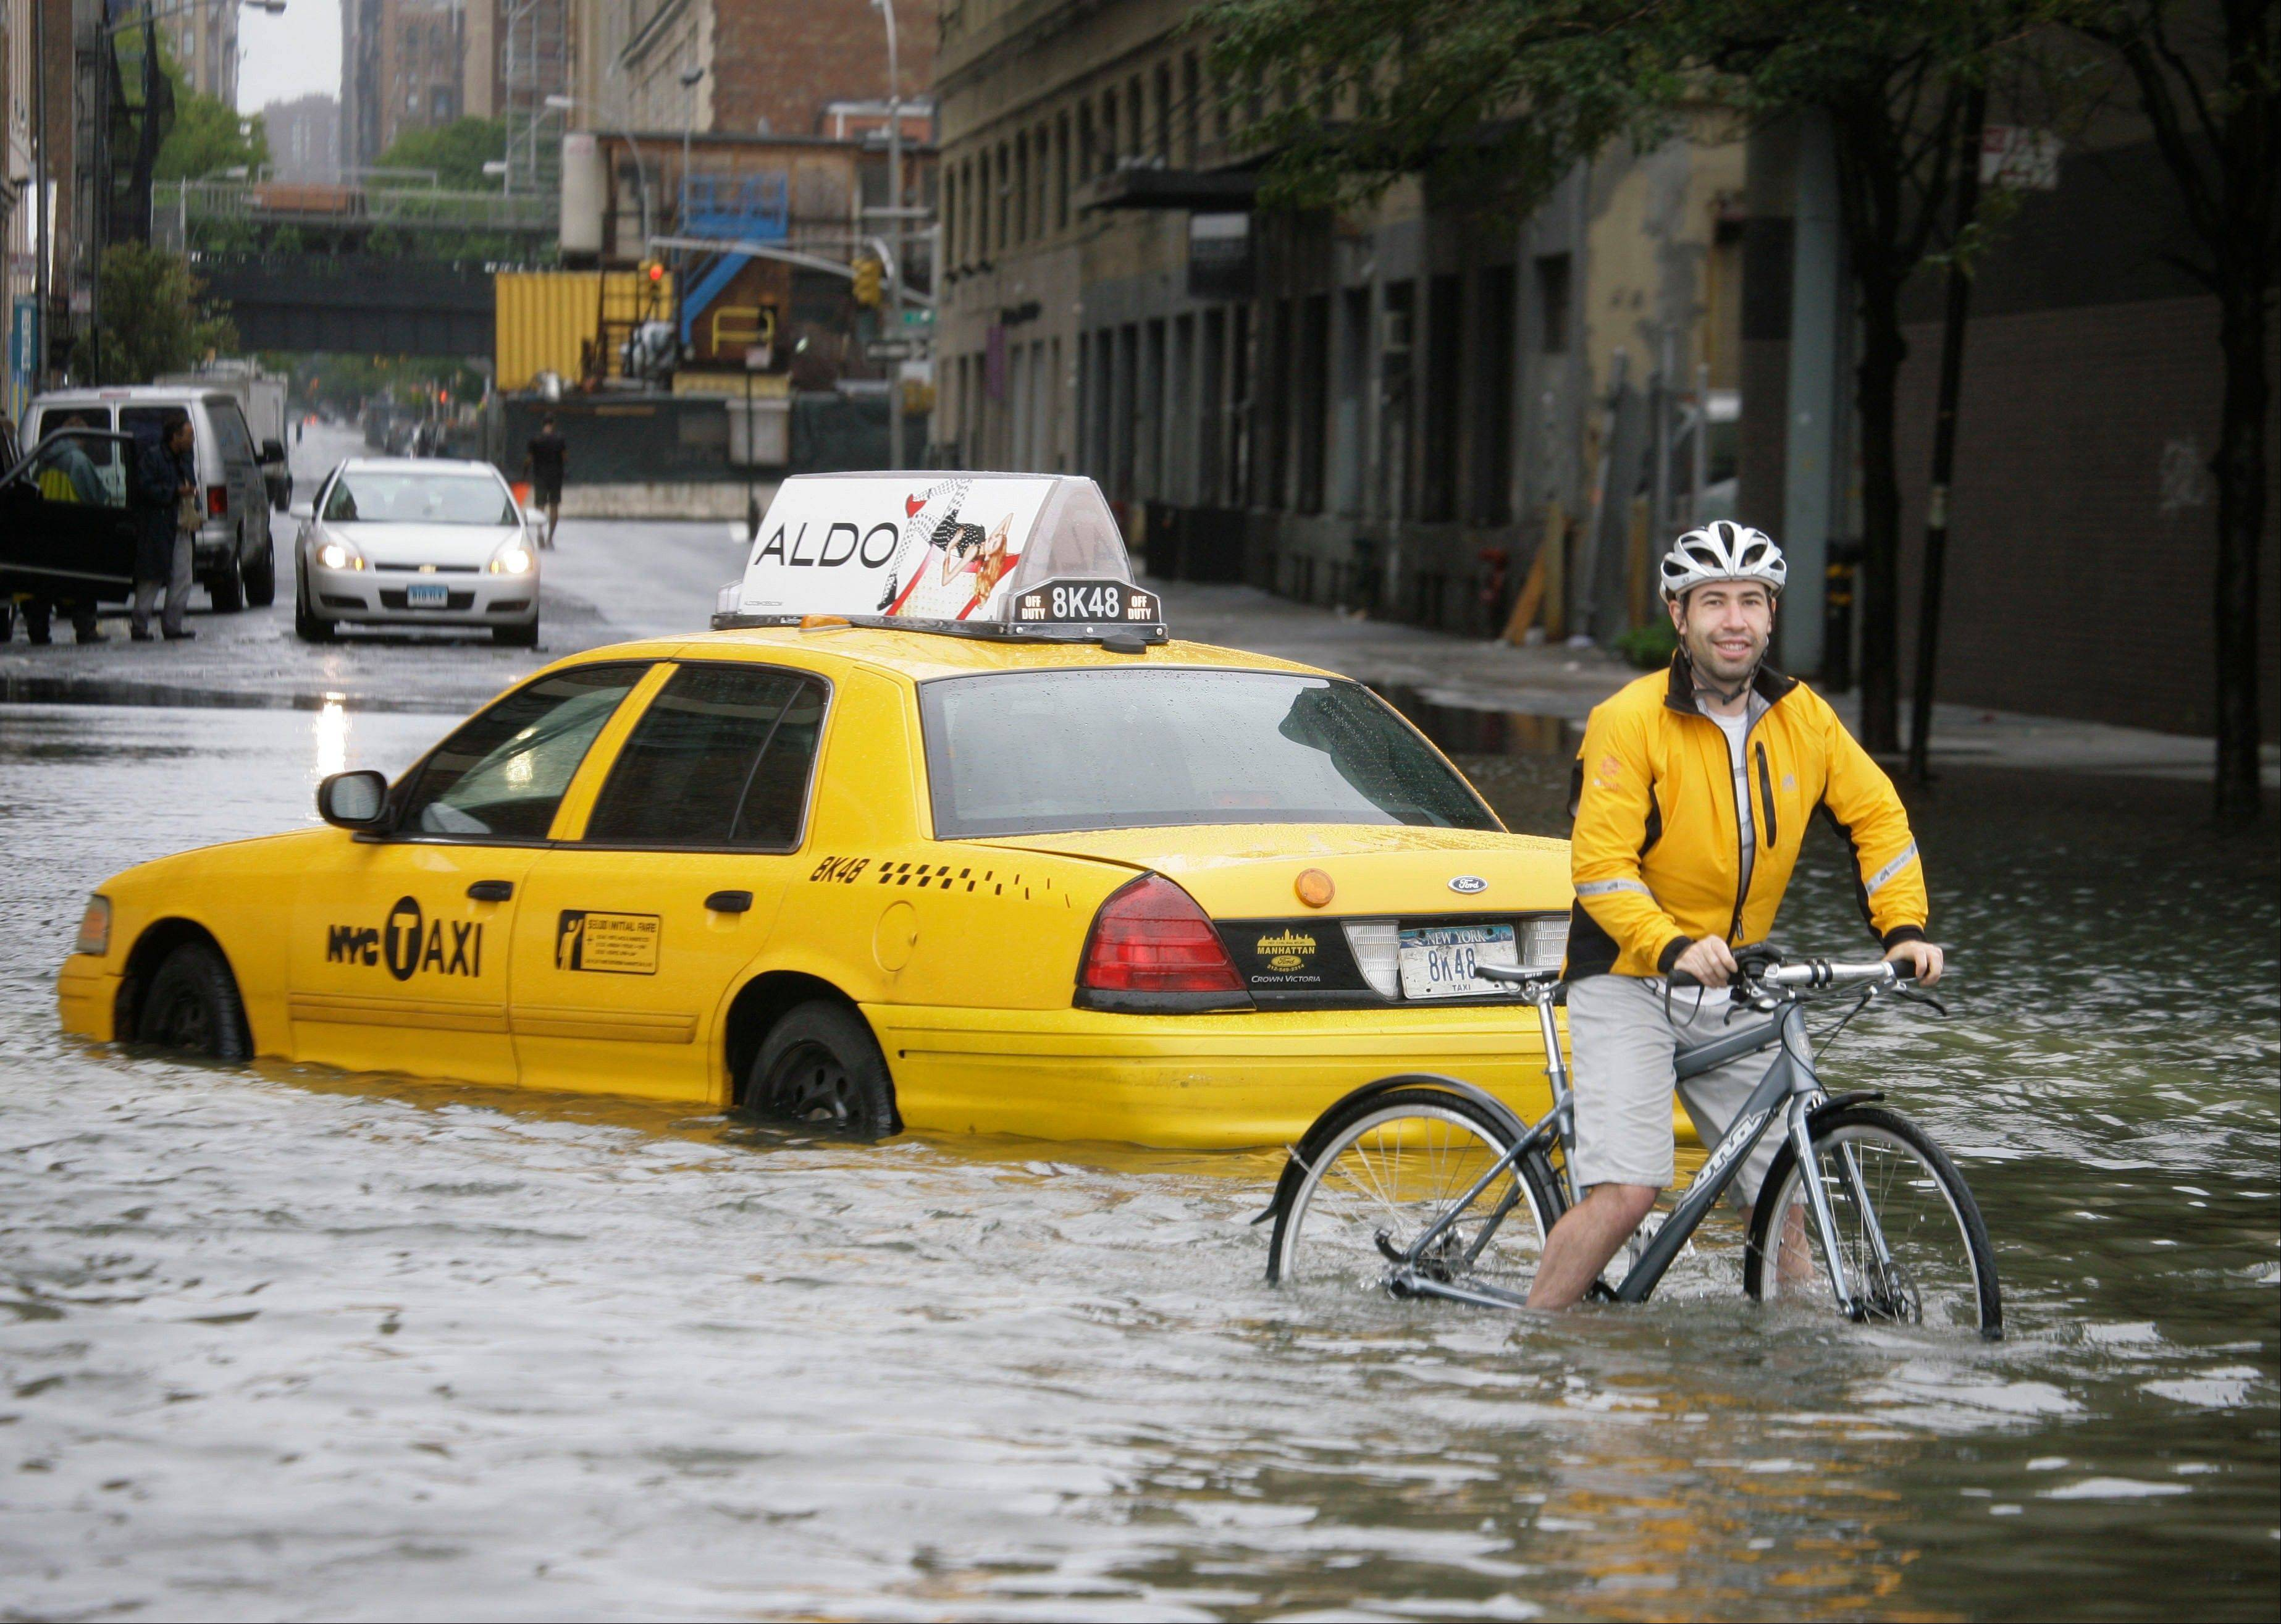 A bicyclist makes his way past a stranded taxi on a flooded New York City Street as Tropical Storm Irene passes through the city, Sunday, Aug. 28, 2011. Although downgraded from a hurricane to a tropical storm, Irene's torrential rain coupled with high winds and tides worked in concert to flood parts of the city.